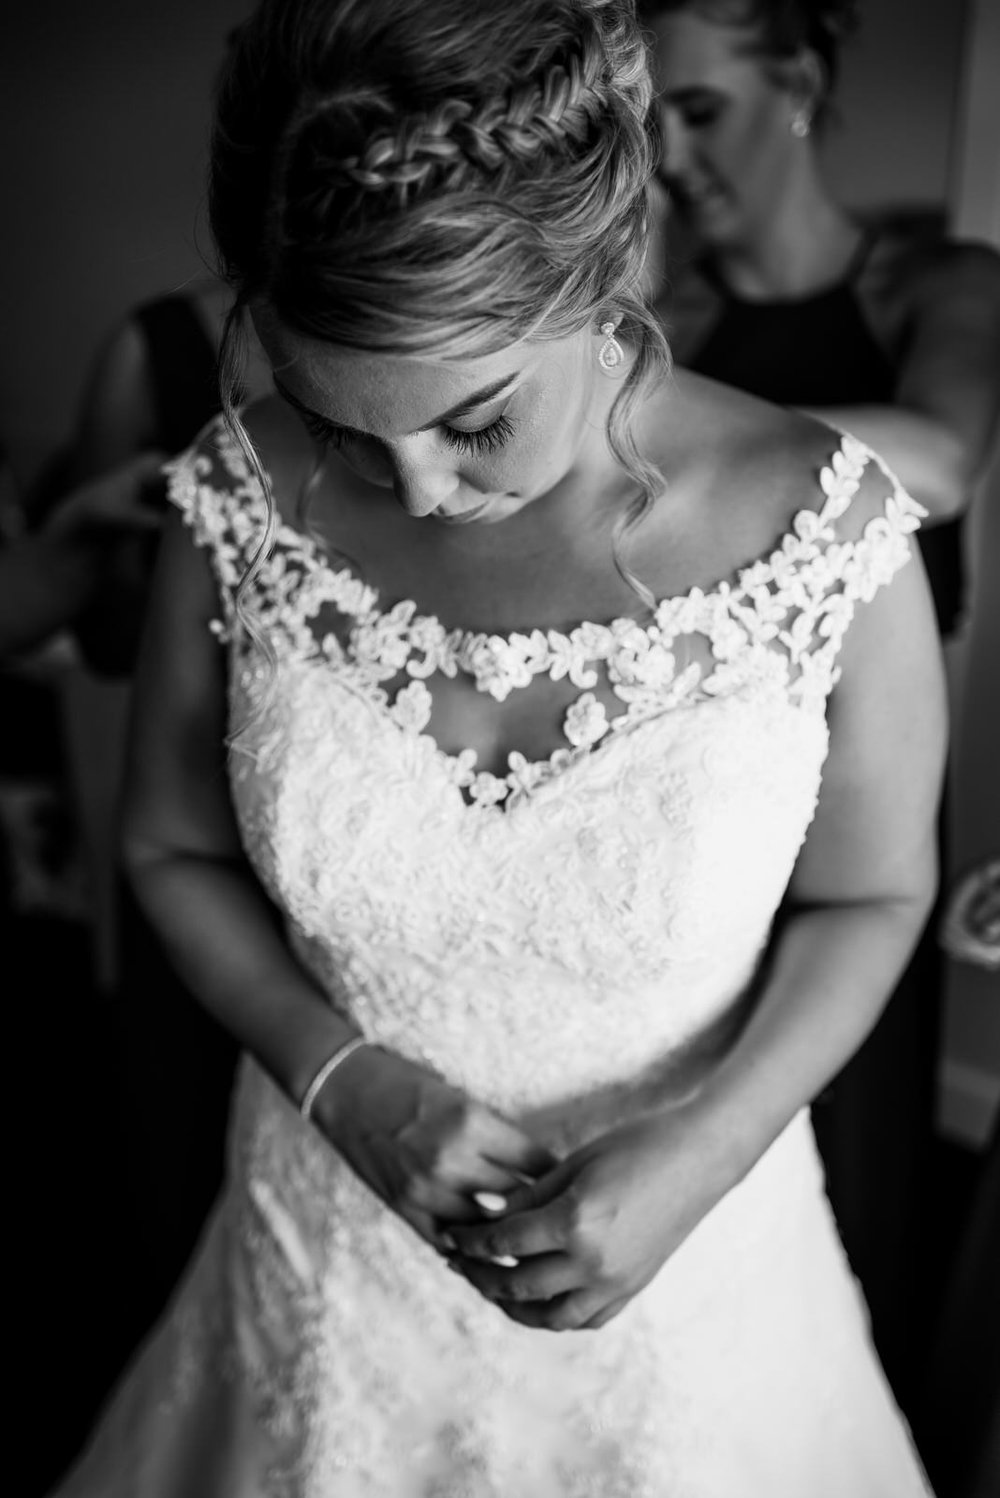 how-do-you-photograph-the-bridal-preparations-hampshire-photography-questions-3.jpg